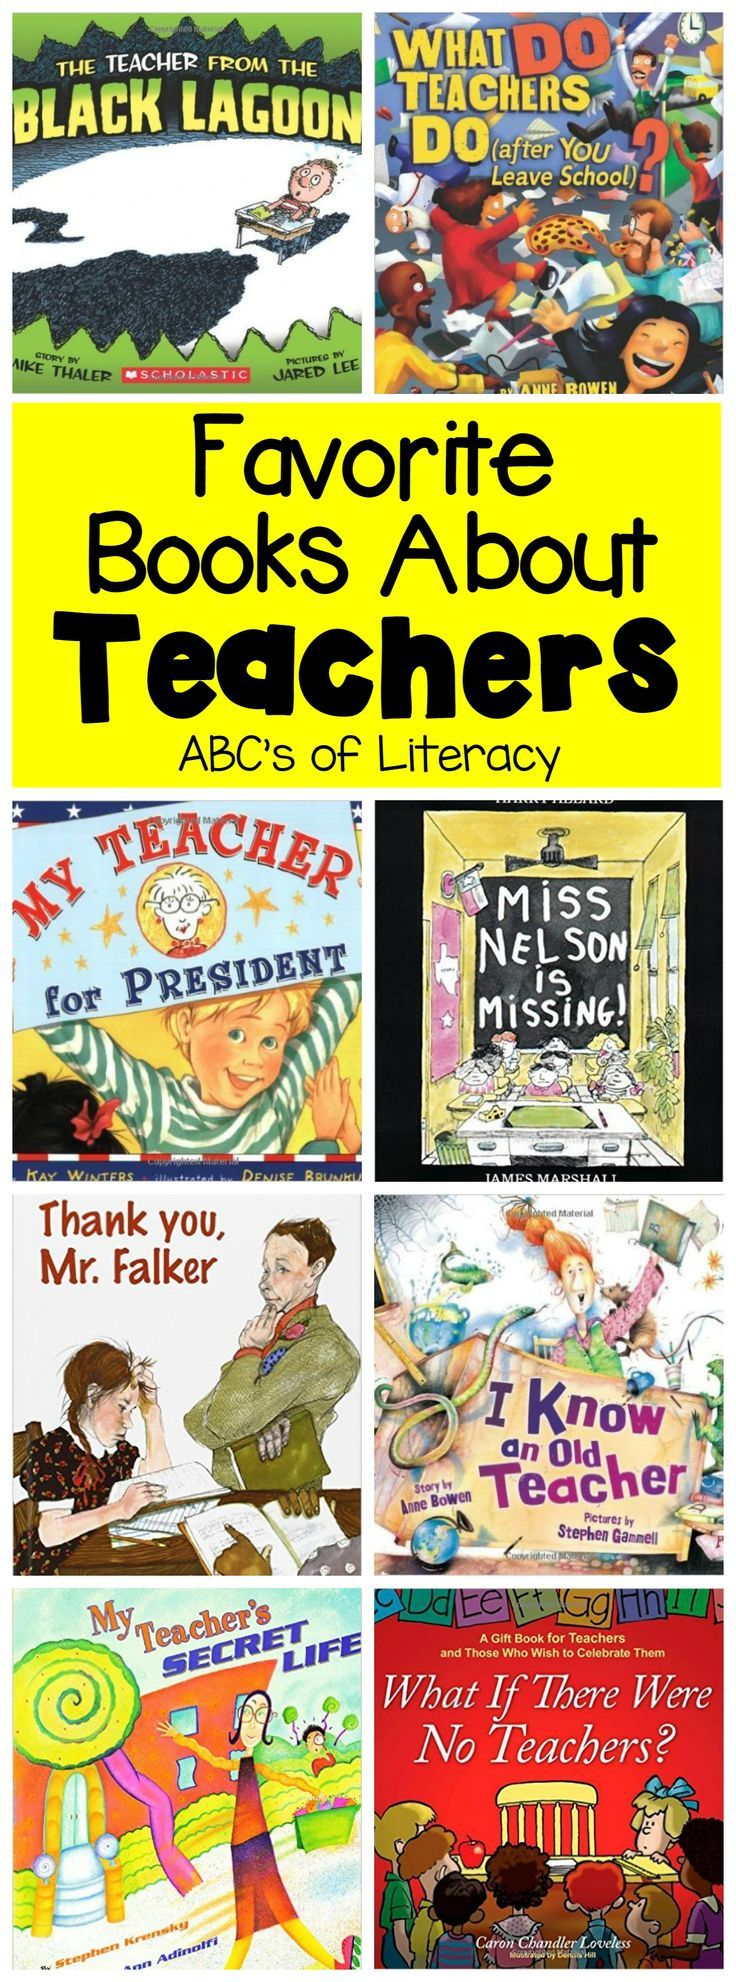 From thoughtful books to silly stories, your students will love to read these 15 Read Aloud Books About Teachers over and over again.